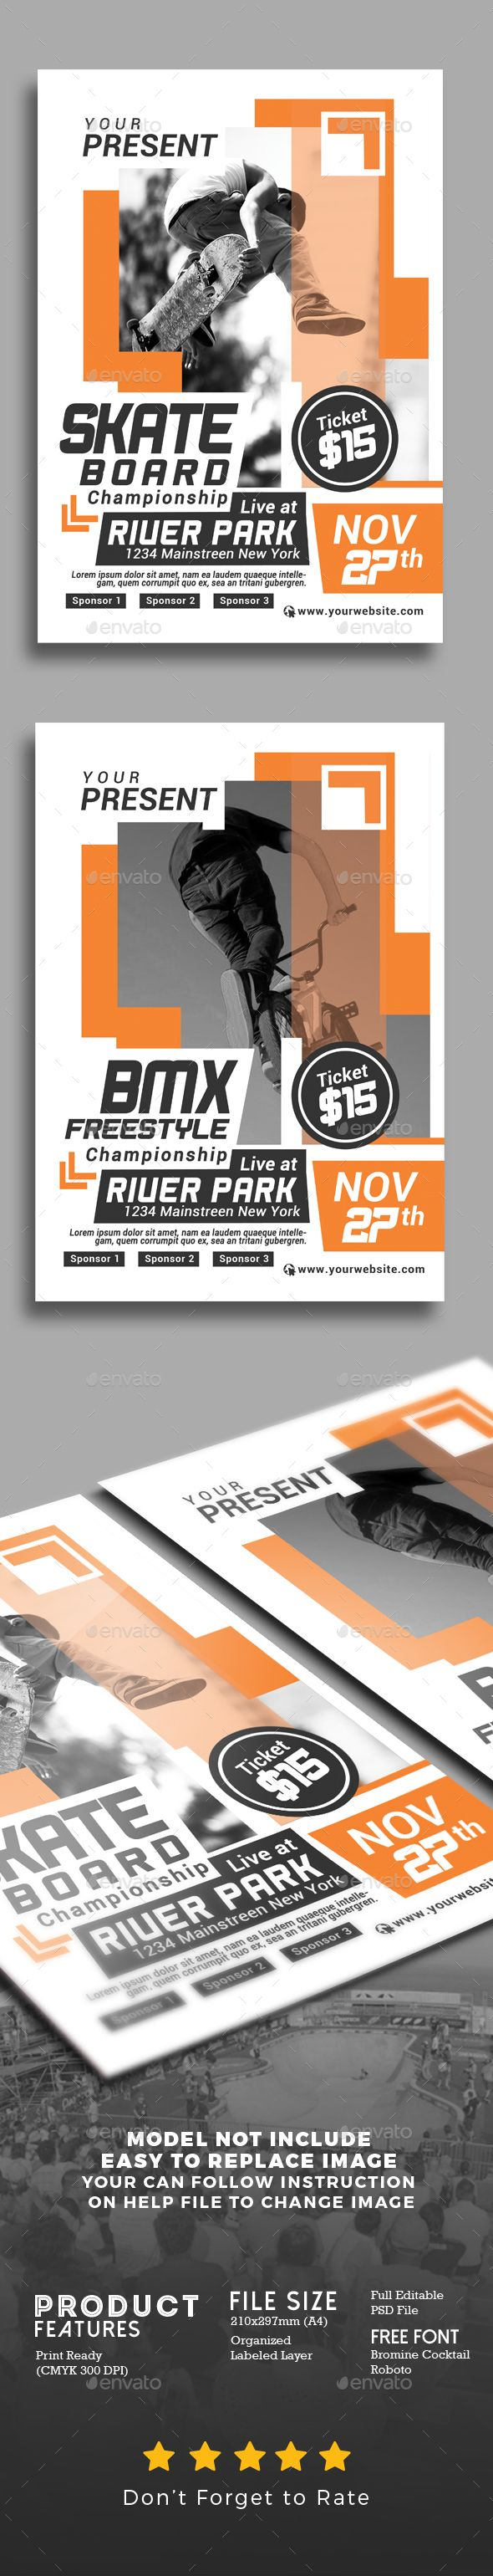 Extreme Sport Competition Flyer Template PSD   Design Inspiration ...